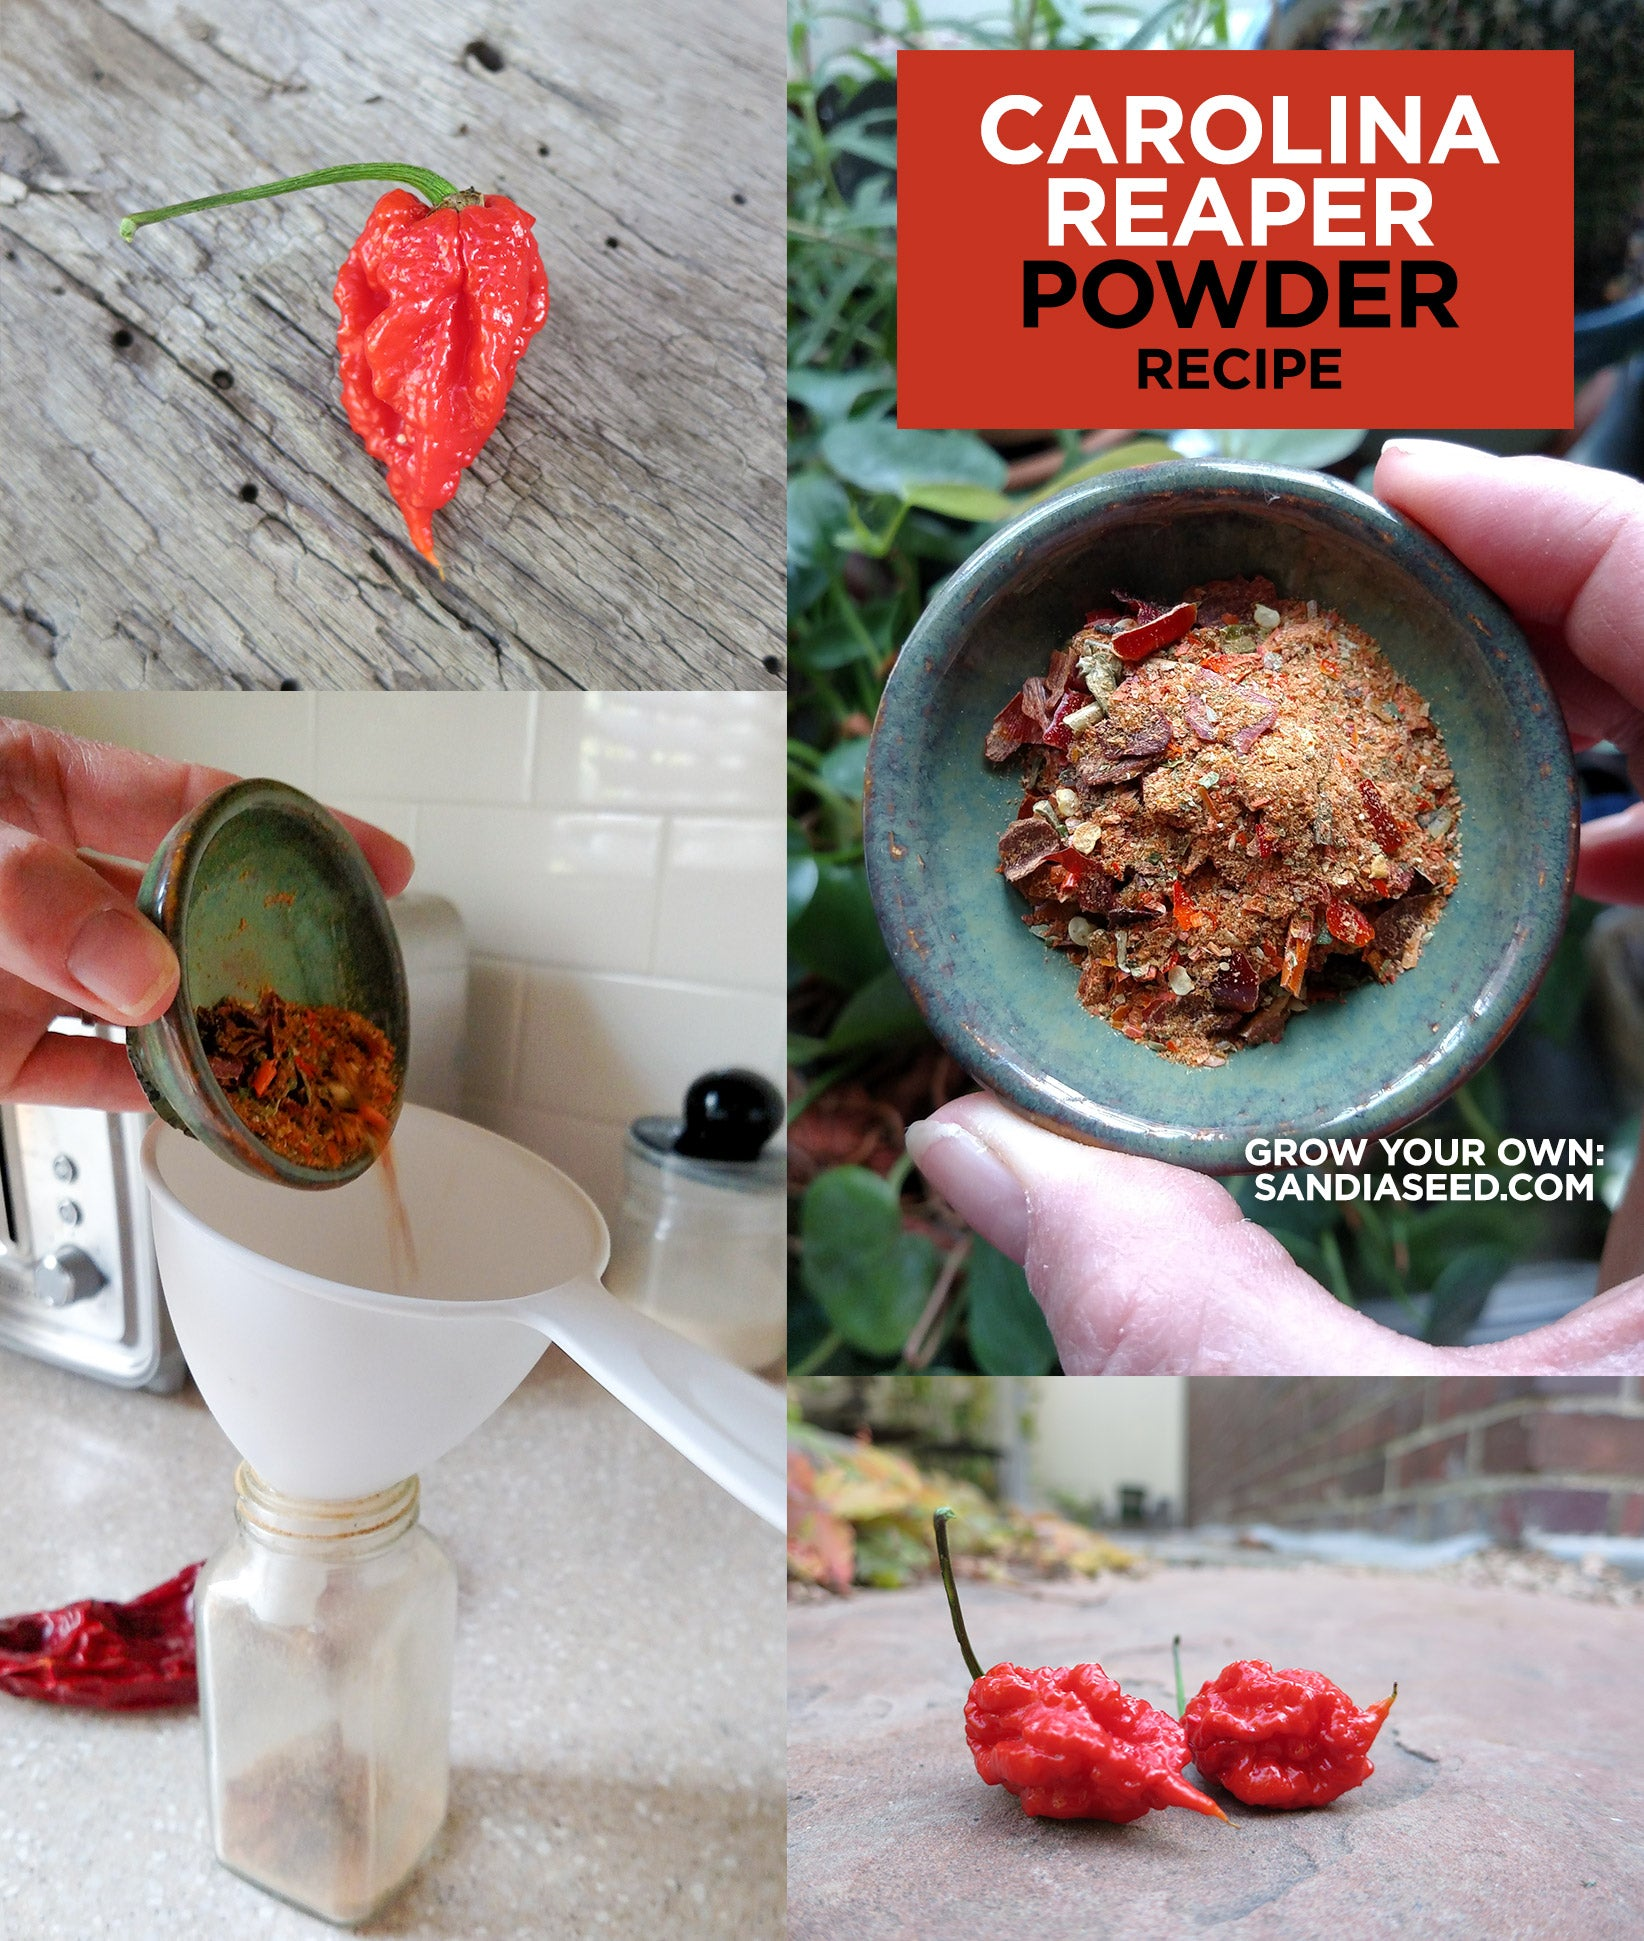 Carolina Reaper Powder Recipe